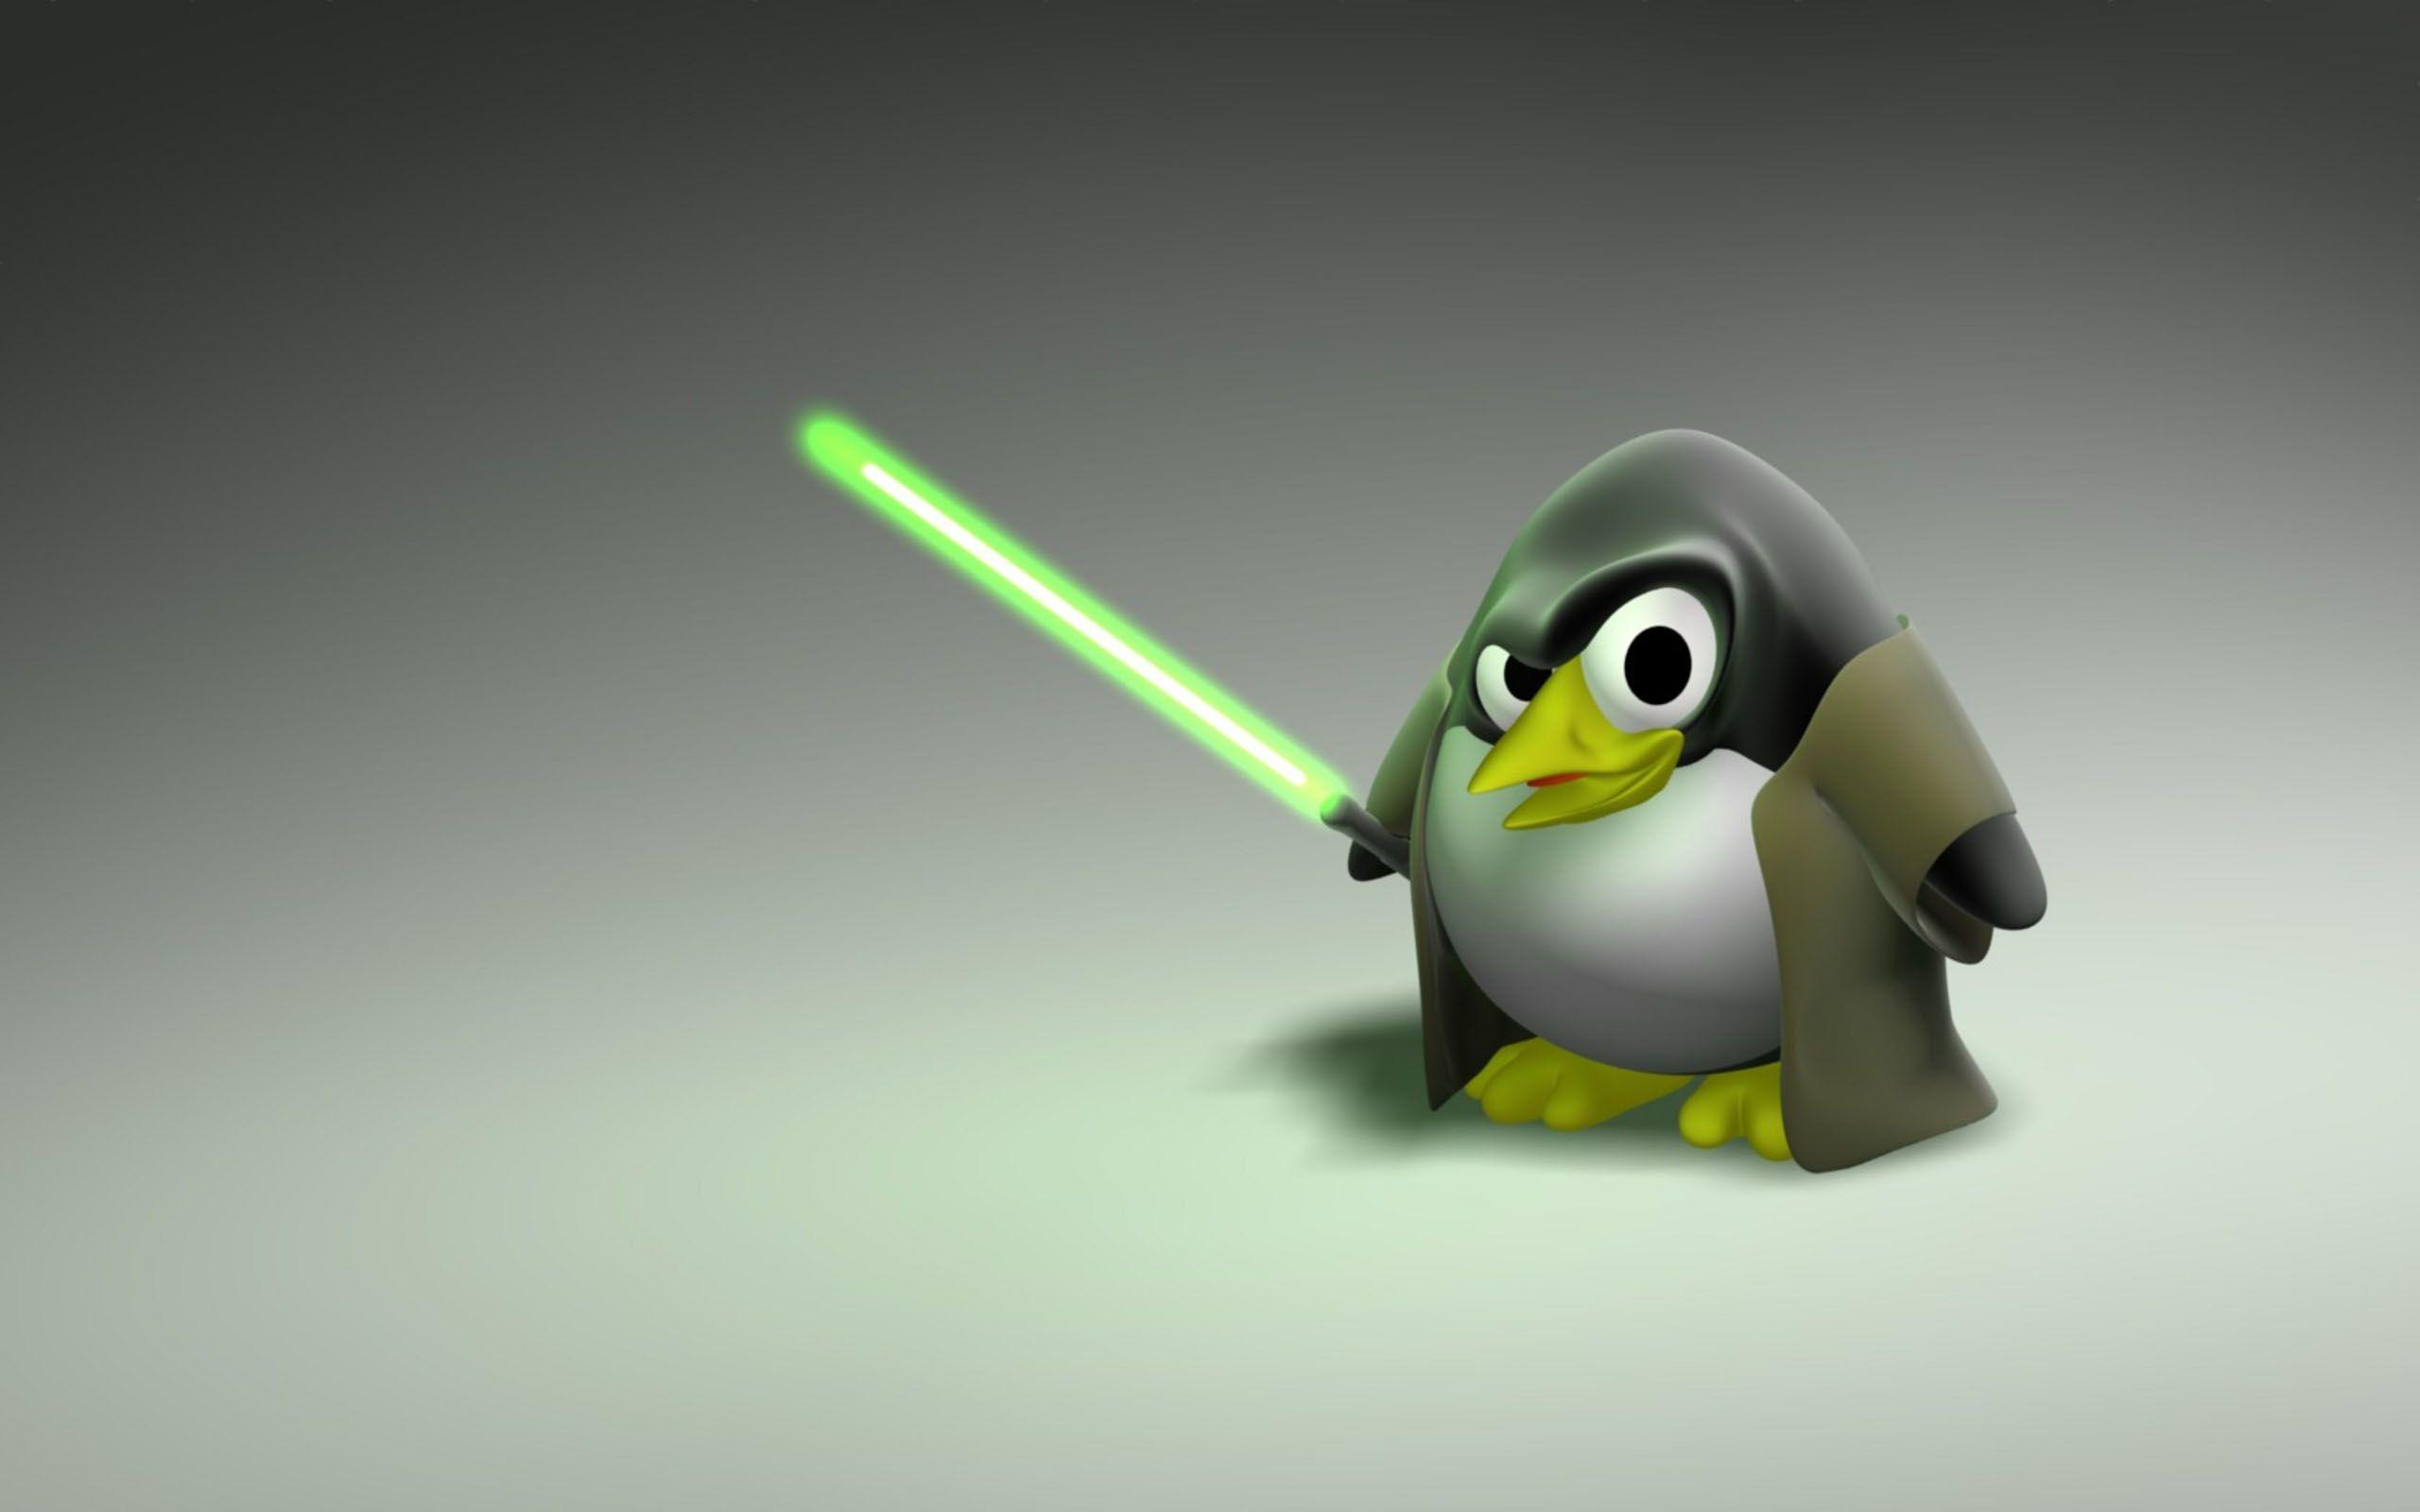 Linux Hd Wallpapers Wallpaper Cave